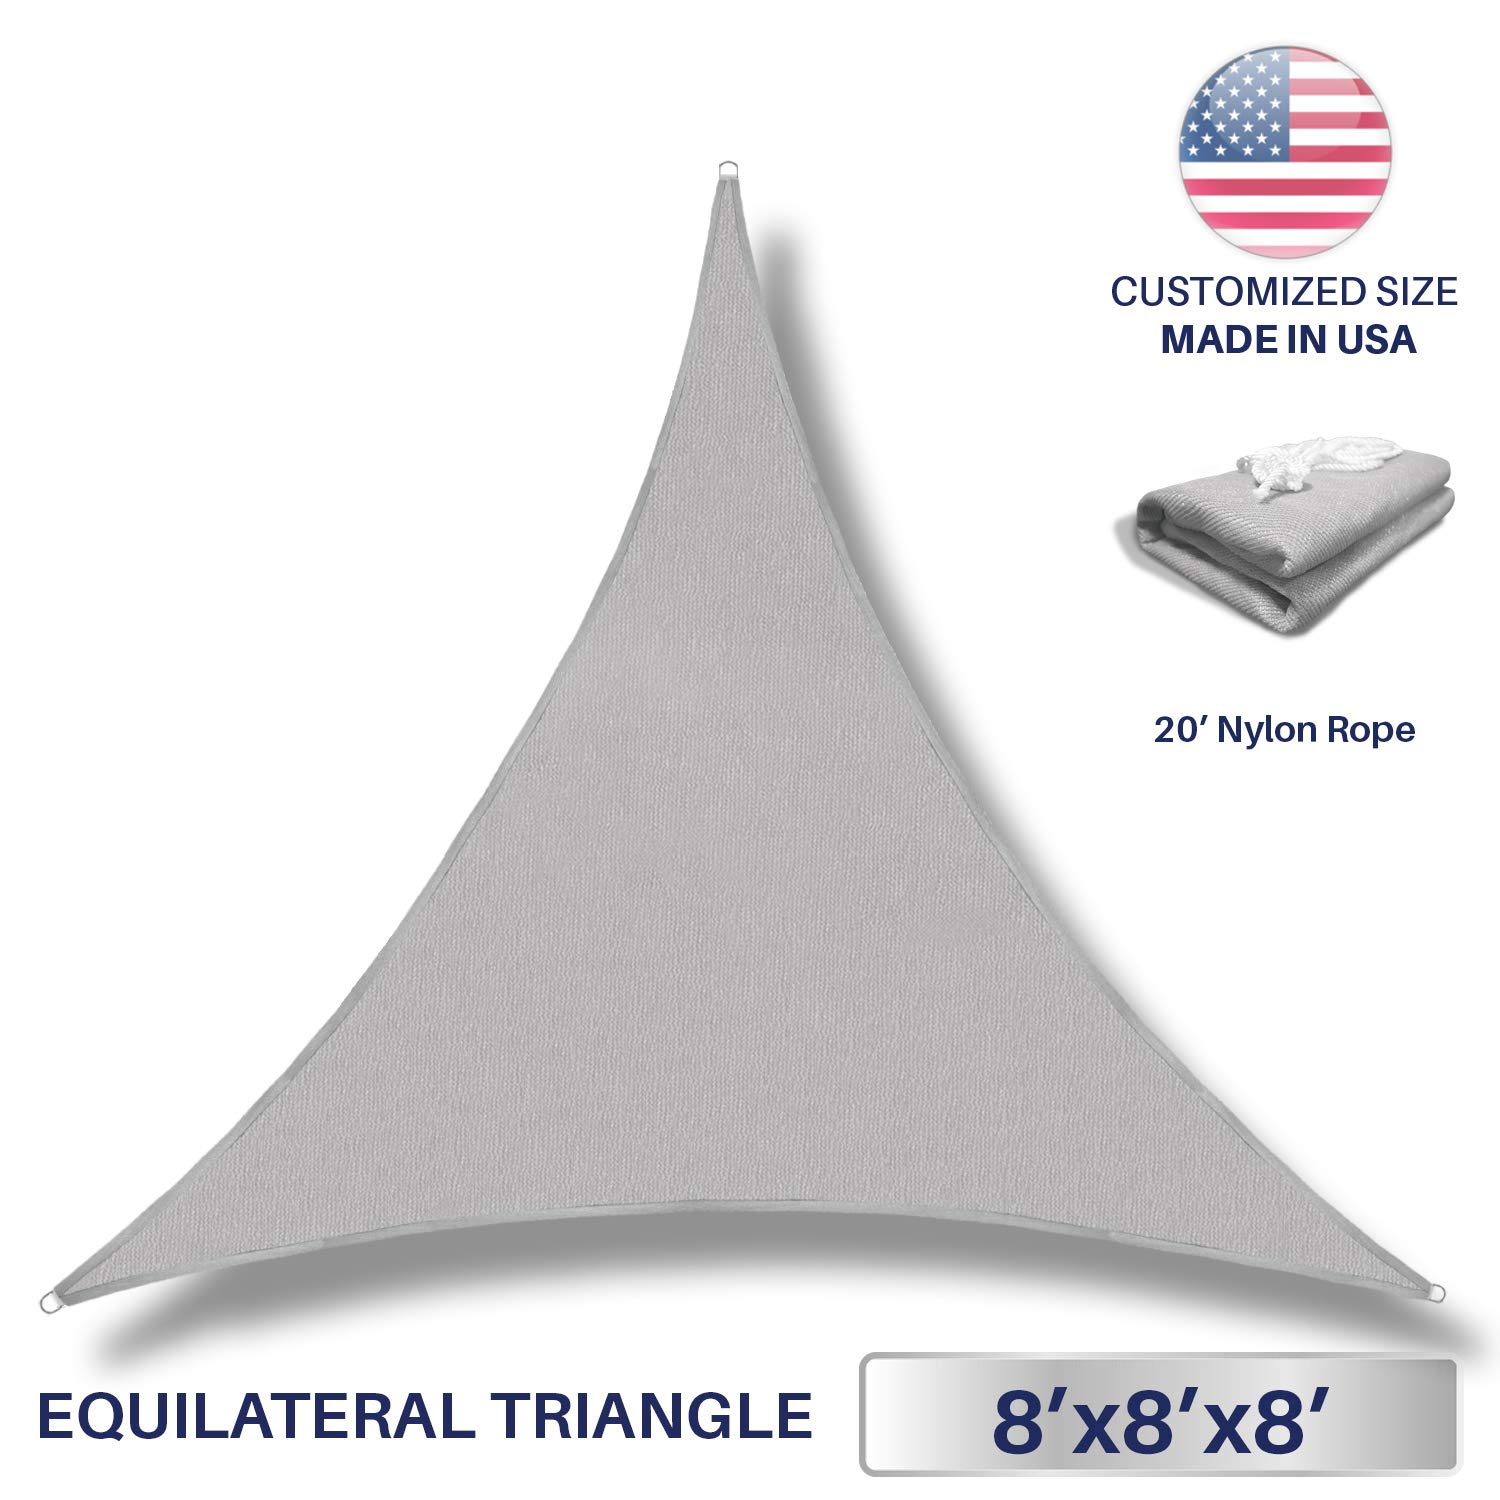 Windscreen4less 8' x 8' x 8' Triangle Sun Shade Sail - Light Grey Durable UV Shelter Canopy for Patio Outdoor Backyard - Custom